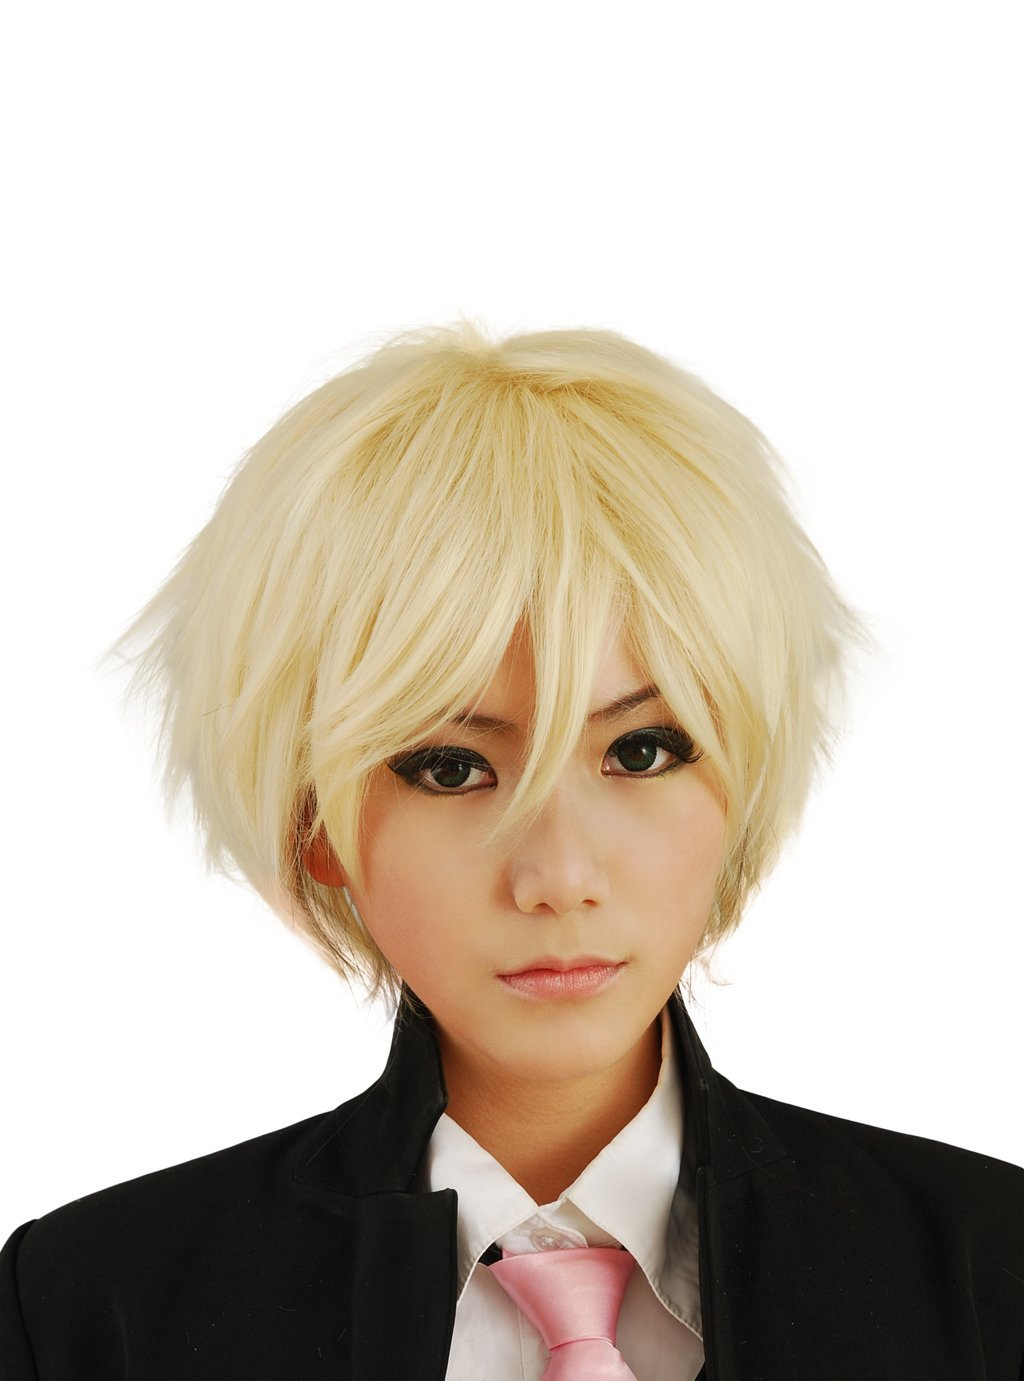 amazoncom hh building cosplay wig mens short layered halloween costume hair wig blonde beauty - Halloween Costumes With Blonde Wig